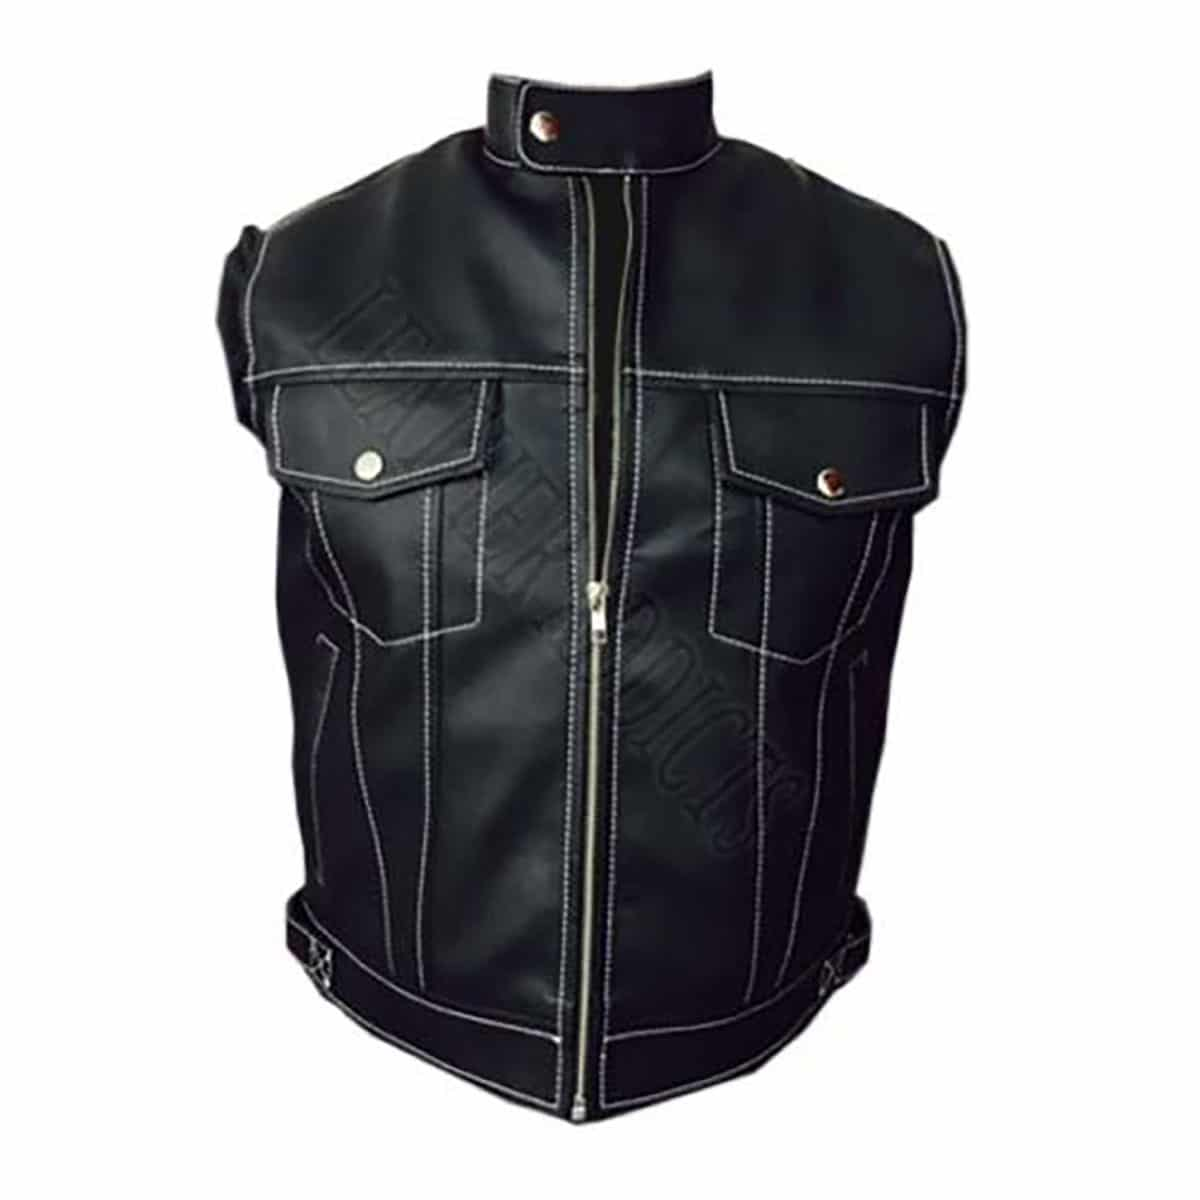 Mens Real Cow Leather Black Motorcycle Biker Style Vest Leather Waistcoat